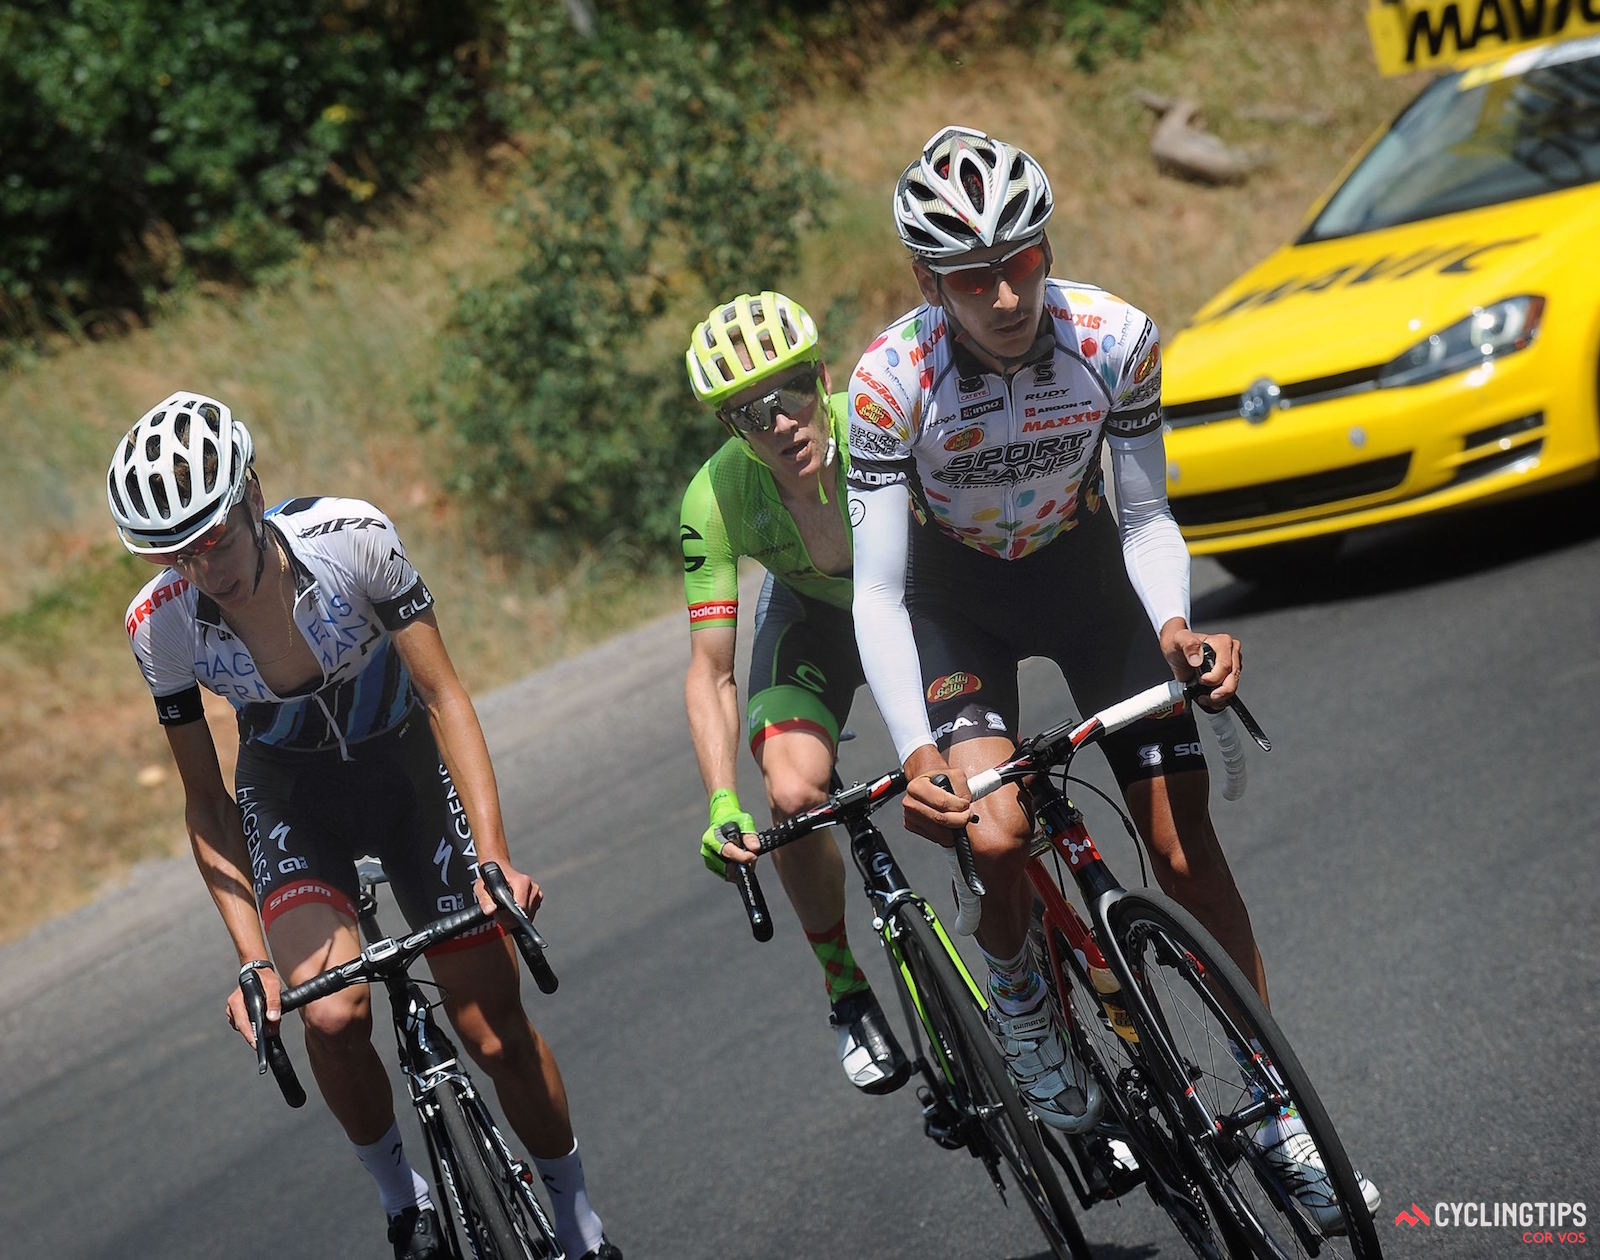 Adrien Costa (Axeon Hagens) climbing alongside Lachlan Morton (Jelly Belly) and Andrew Talansky (Cannondale-Drapac) on stage three of the 2016 Larry H. Miller Tour of Utah.